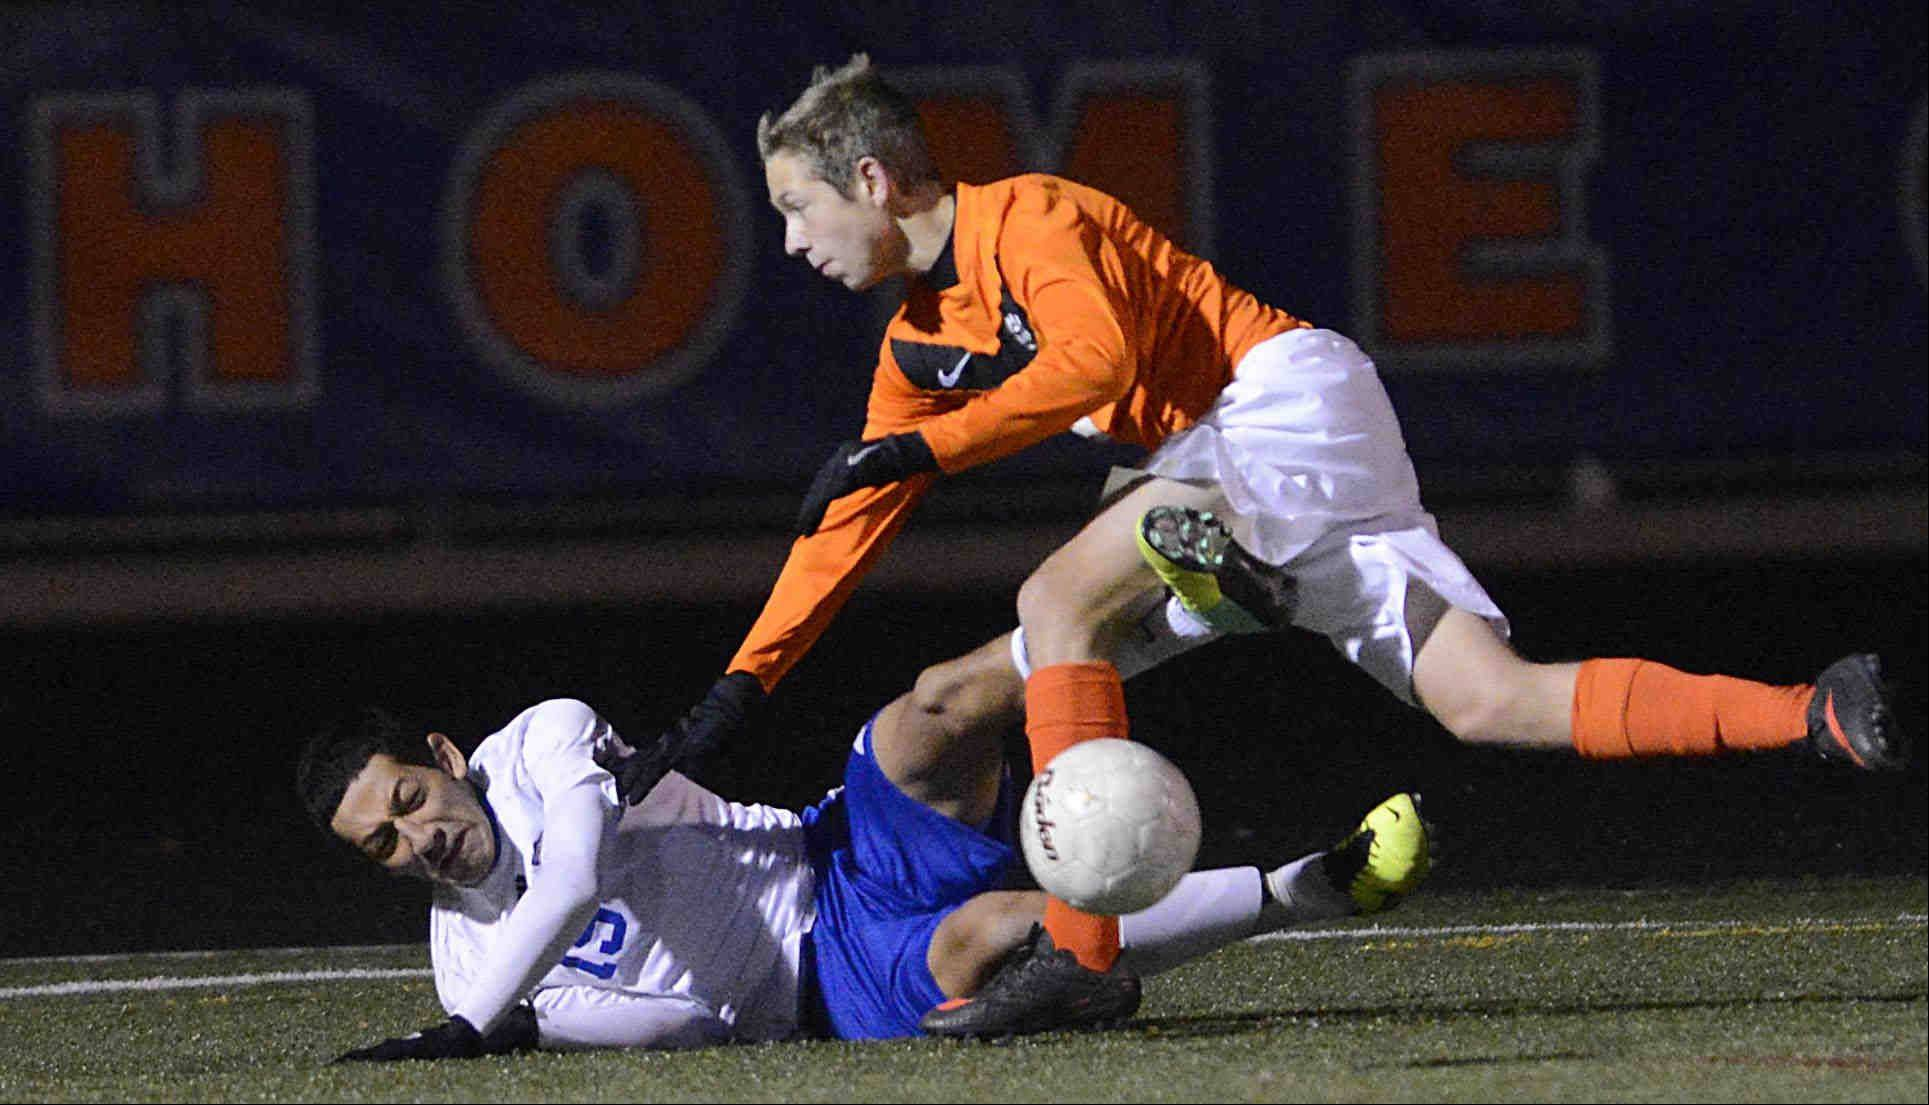 John Starks/jstarks@dailyherald.comWheeling competes in the Class 3A soccer state championship game Saturday night in Hoffman Estates.